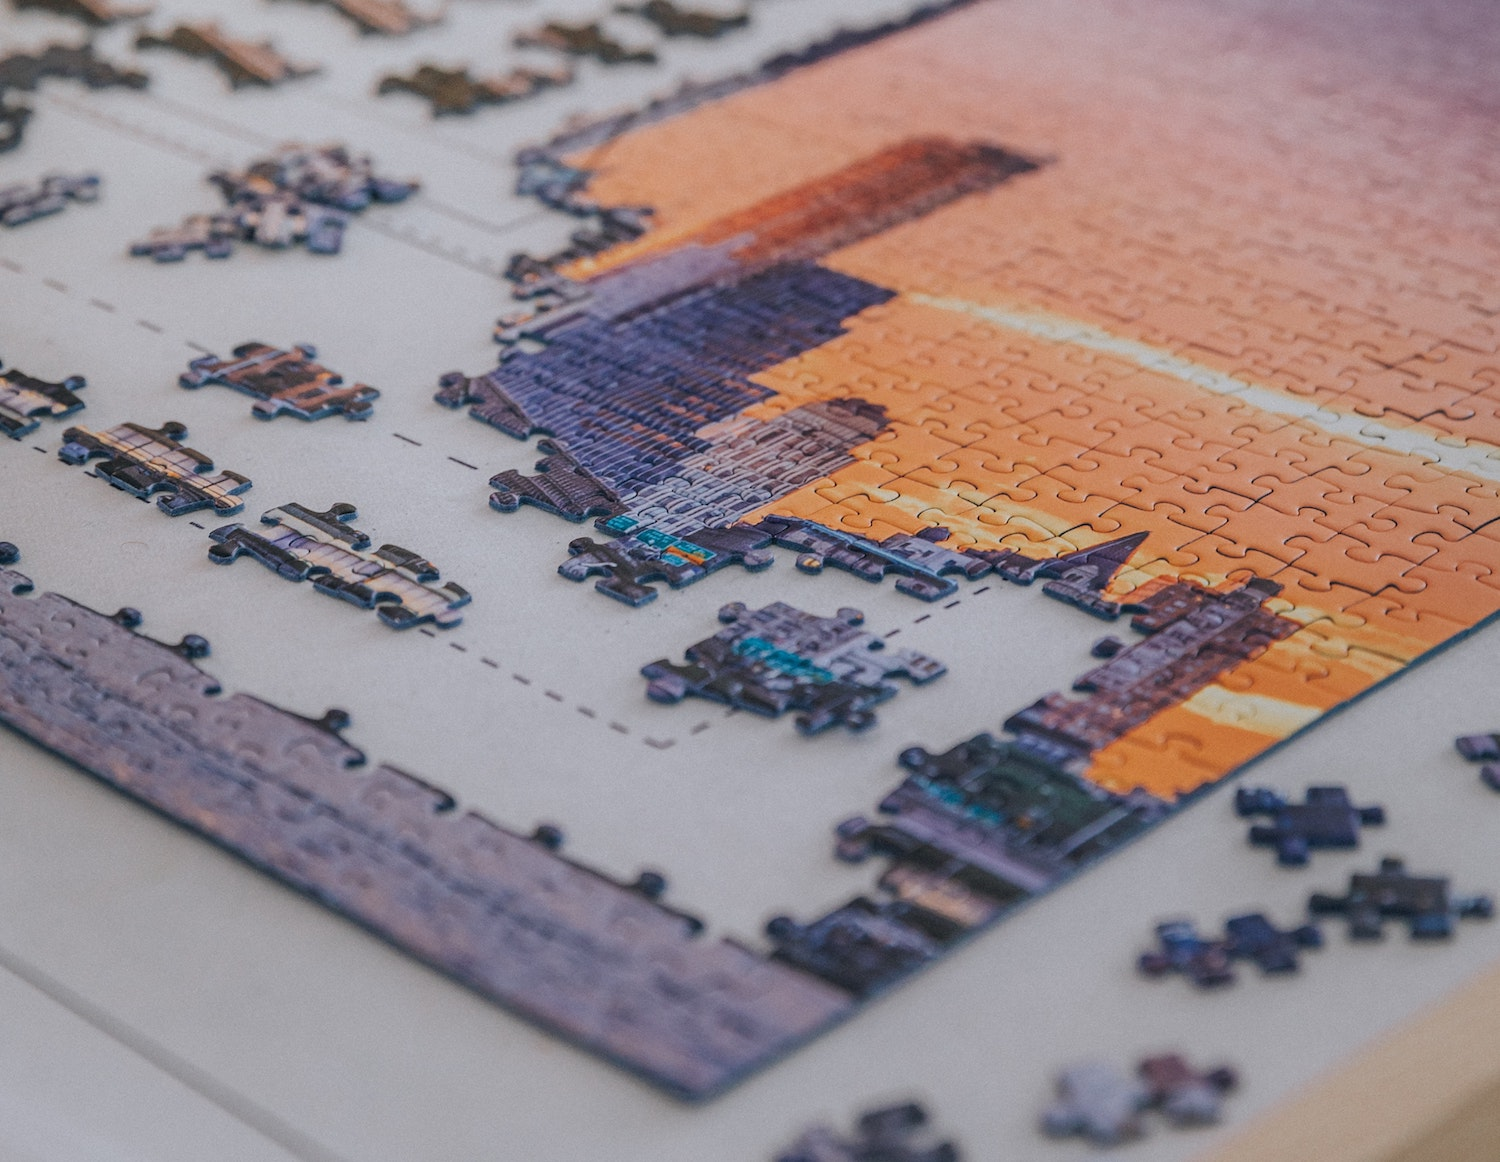 Life lessons from… puzzling? (yes really)